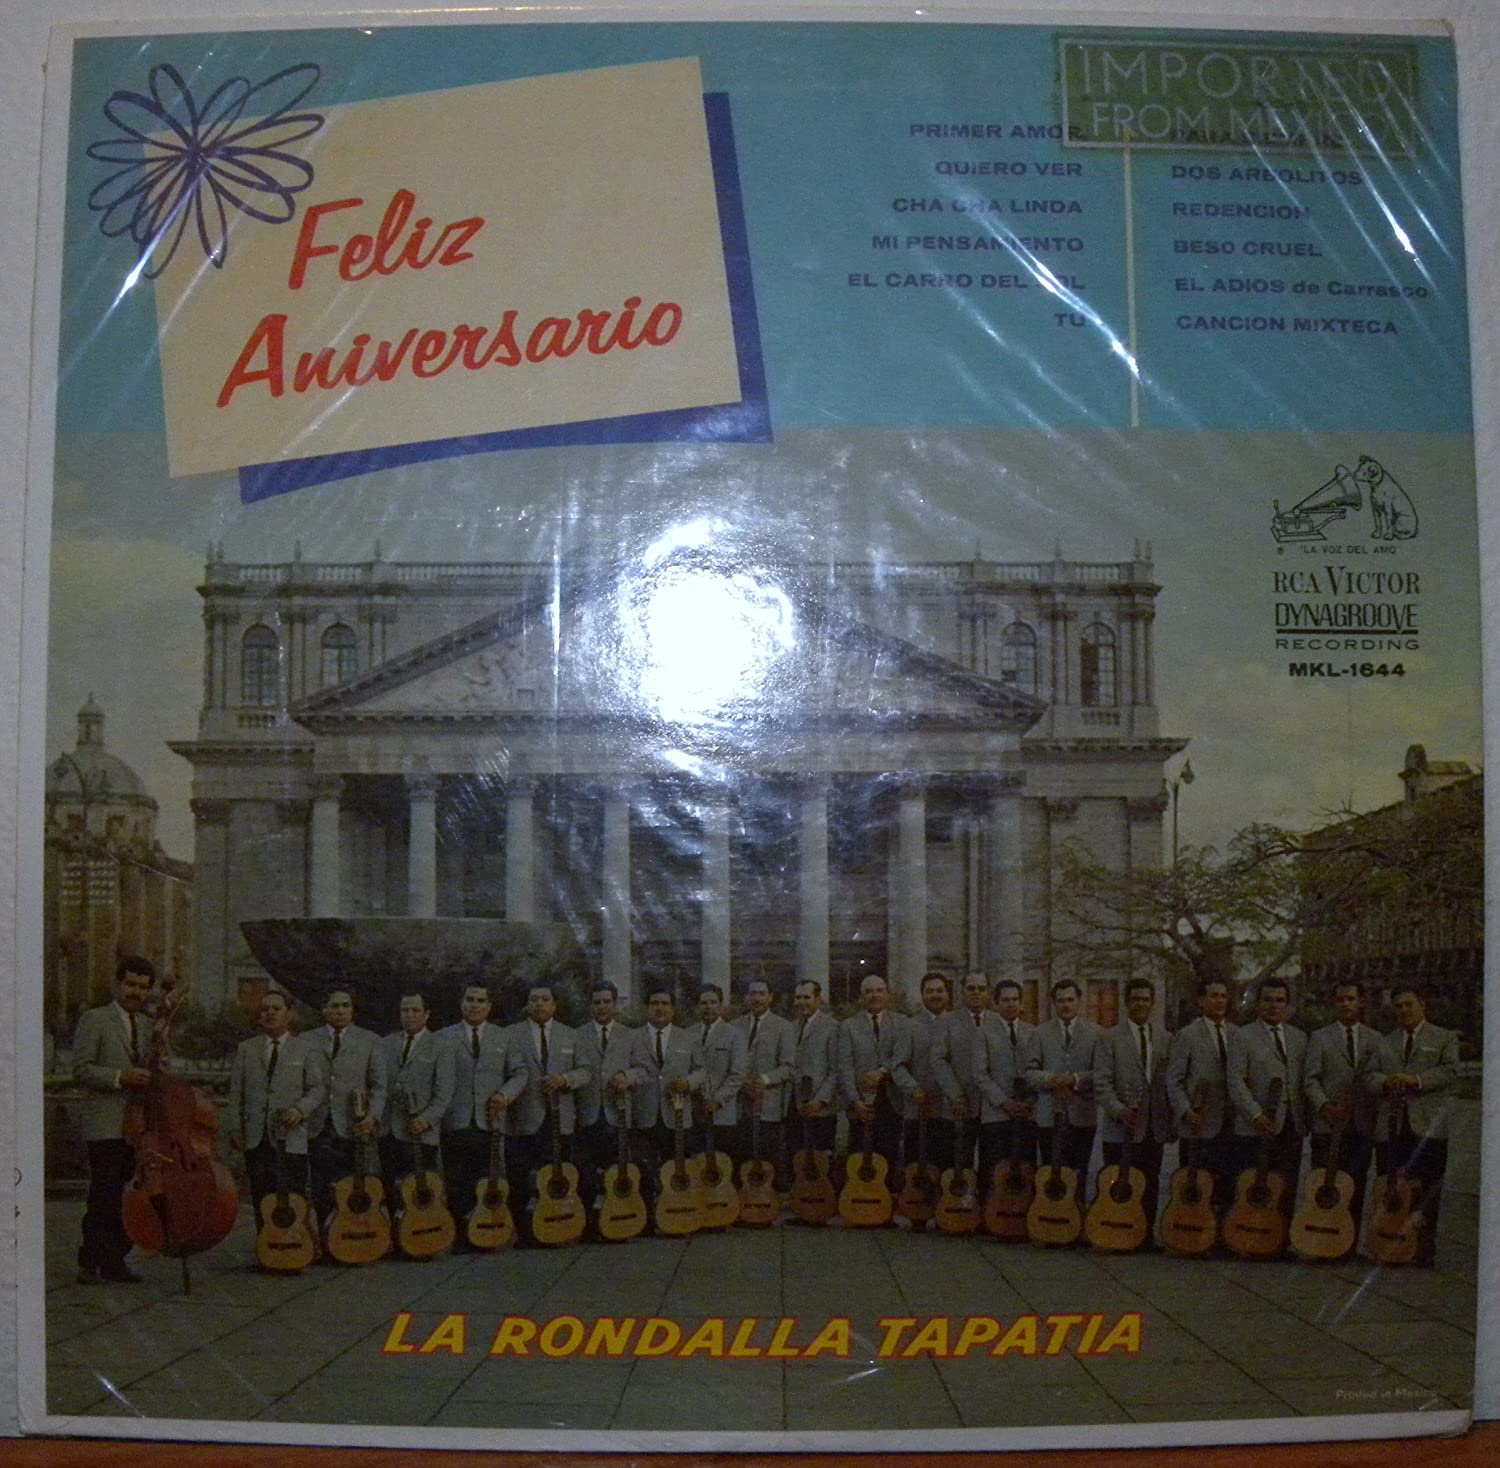 La Rondalla Tapatia - Feliz Aniversario, 22 Voices 22 Guitars - Amazon.com Music